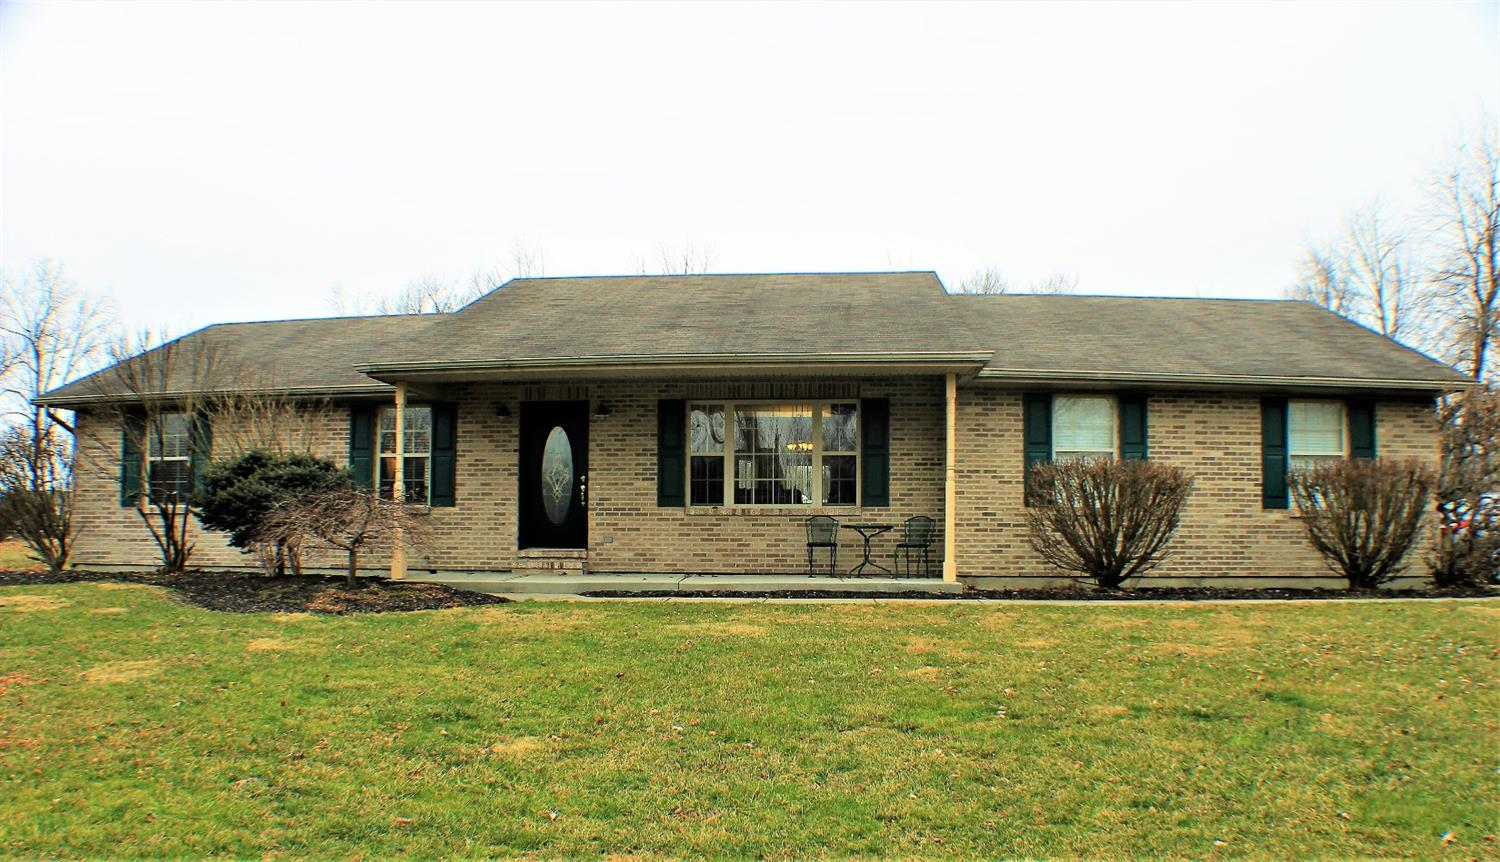 Photo 1 for 2997 Park Rd Wayne Twp. (Clermont Co.), OH 45122